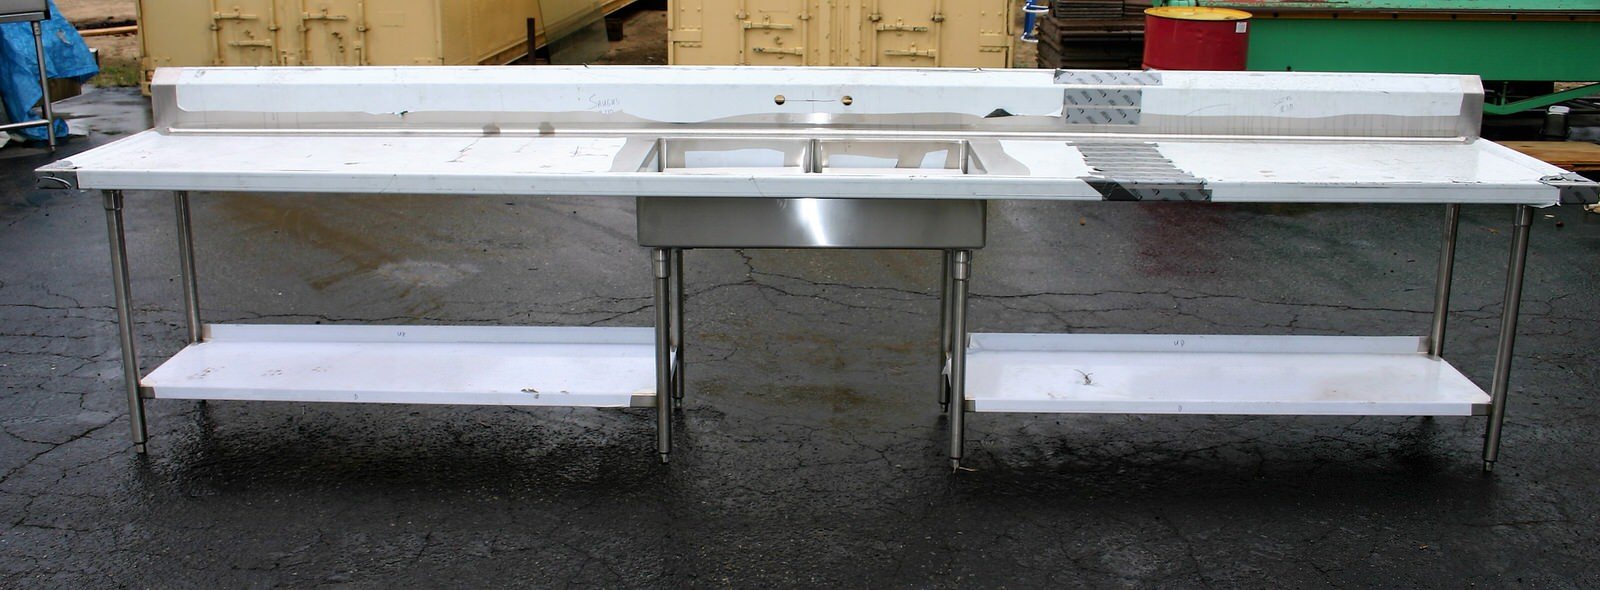 Stainless Steel Sinks Perfection Stainless 6